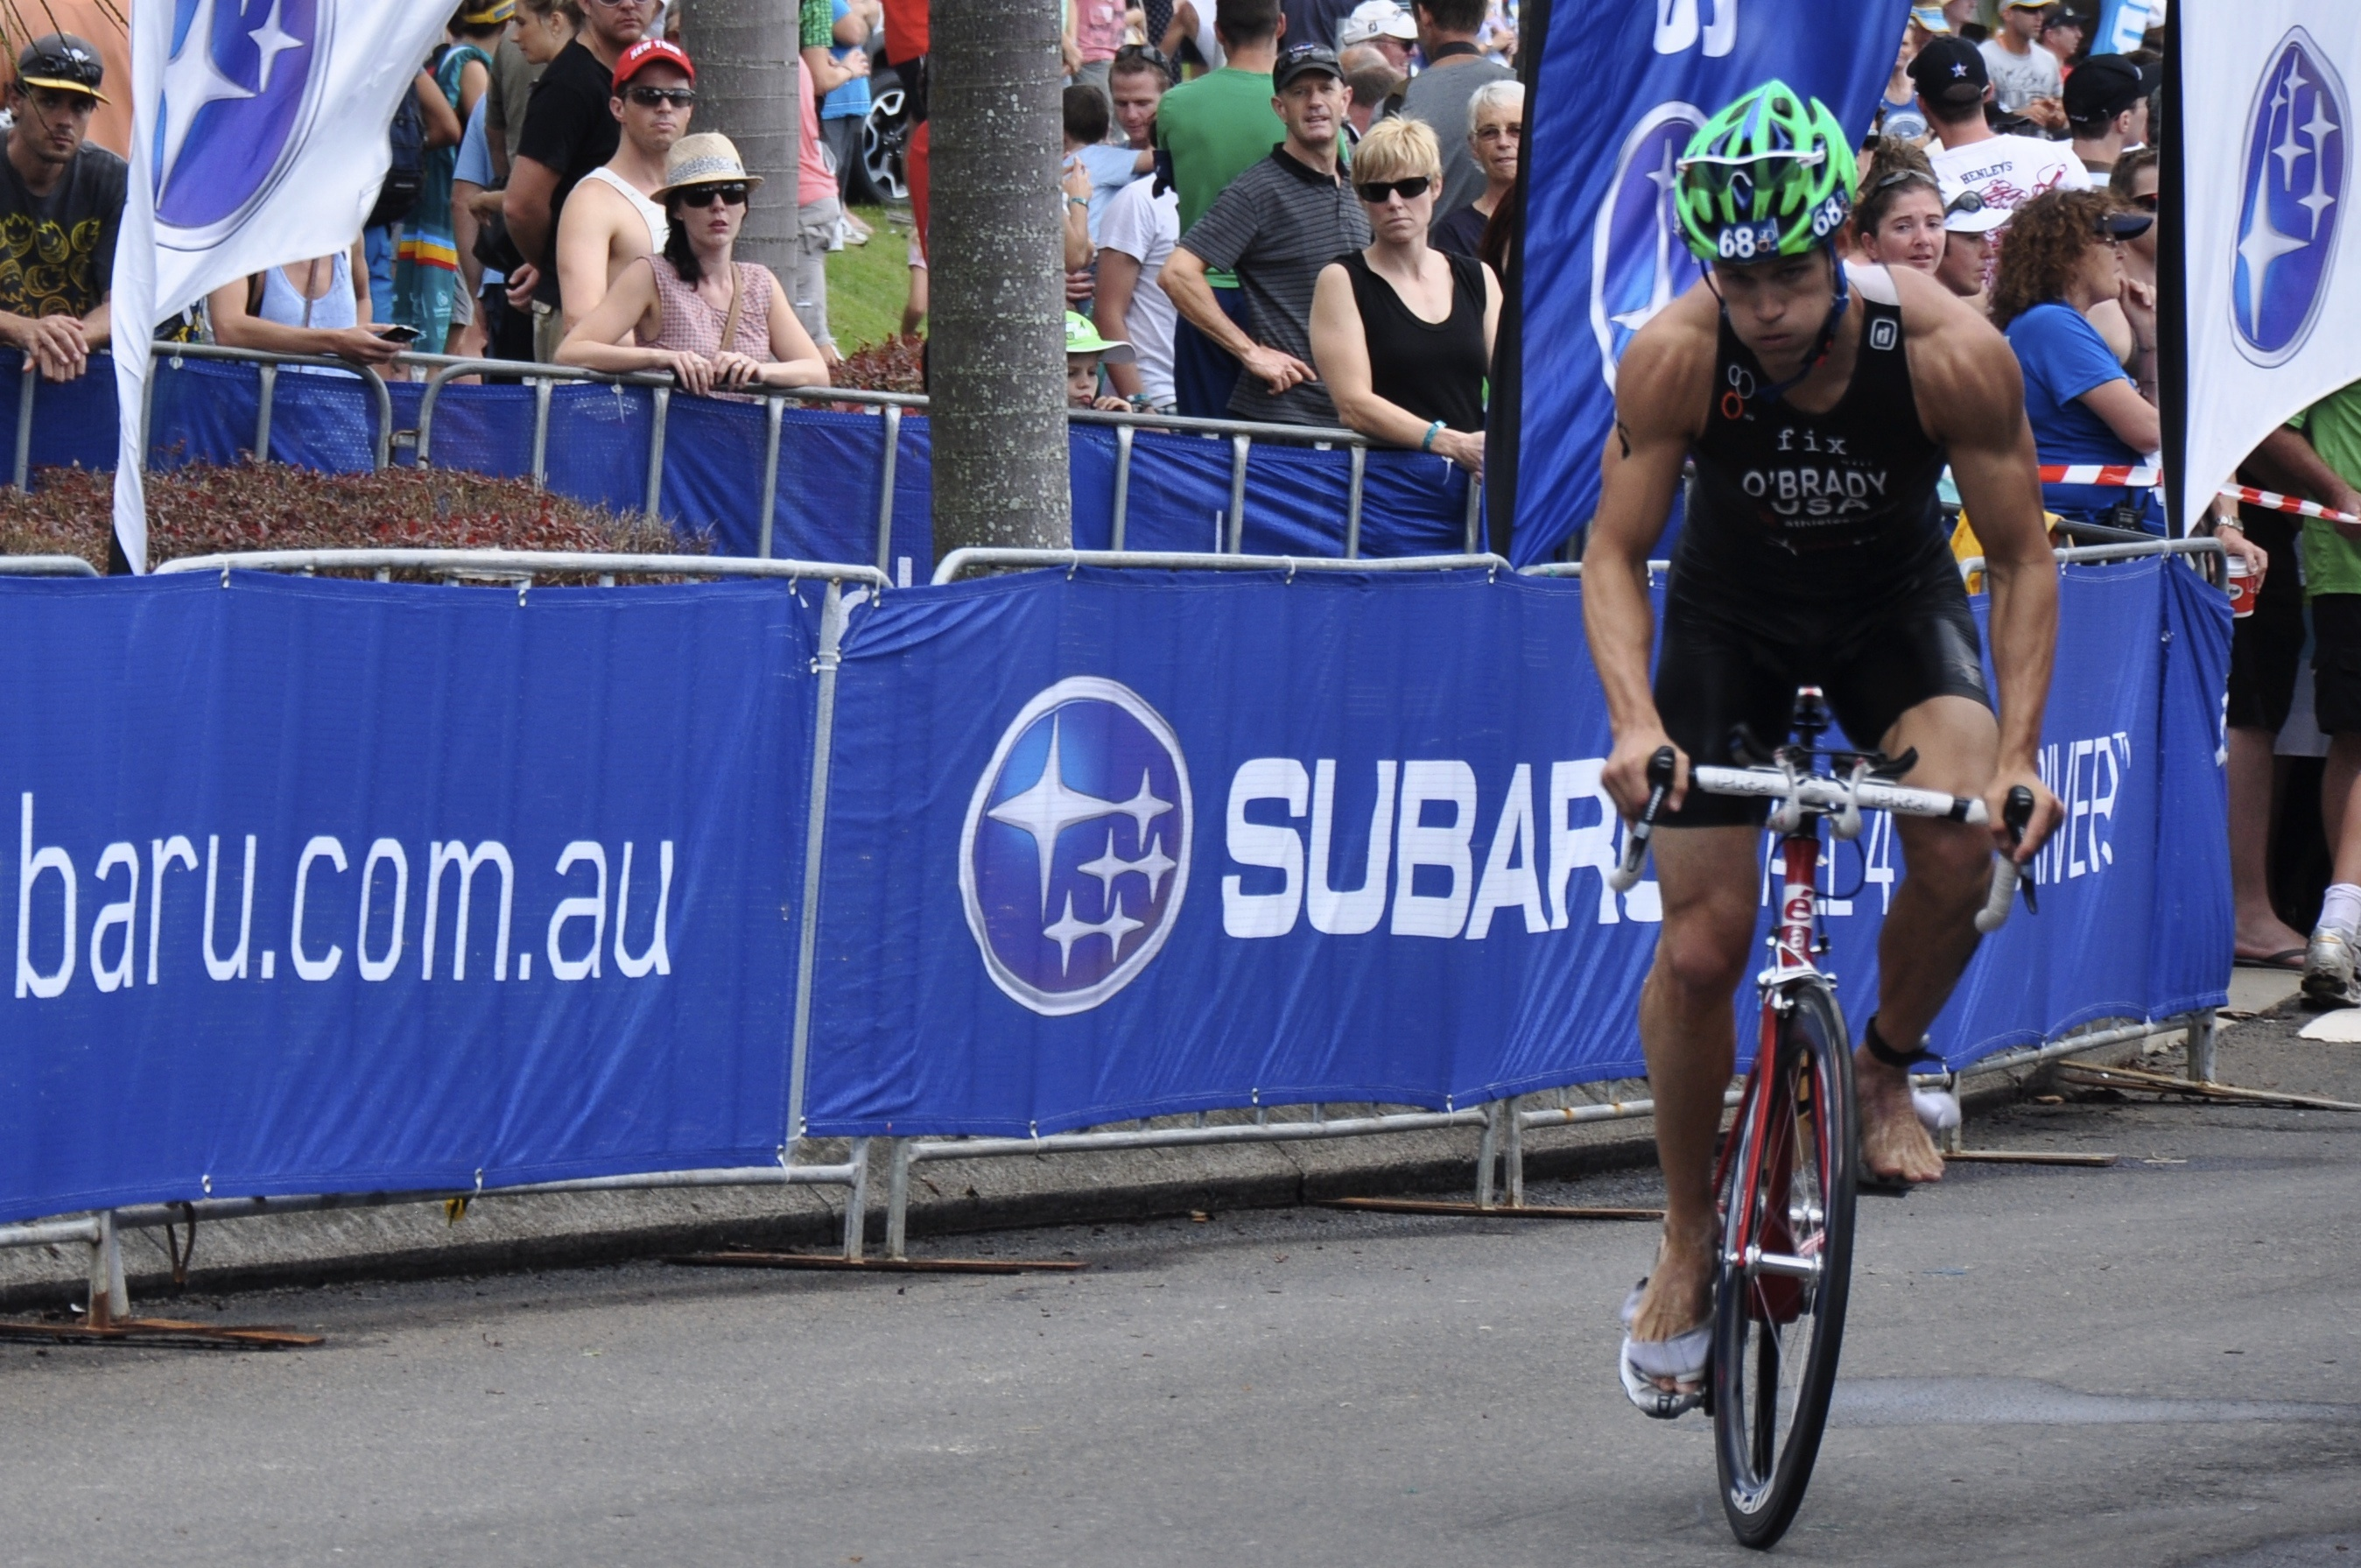 O'Brady's  professional triathlon  career provided a  great training base  for preparing for the Grand Slam.